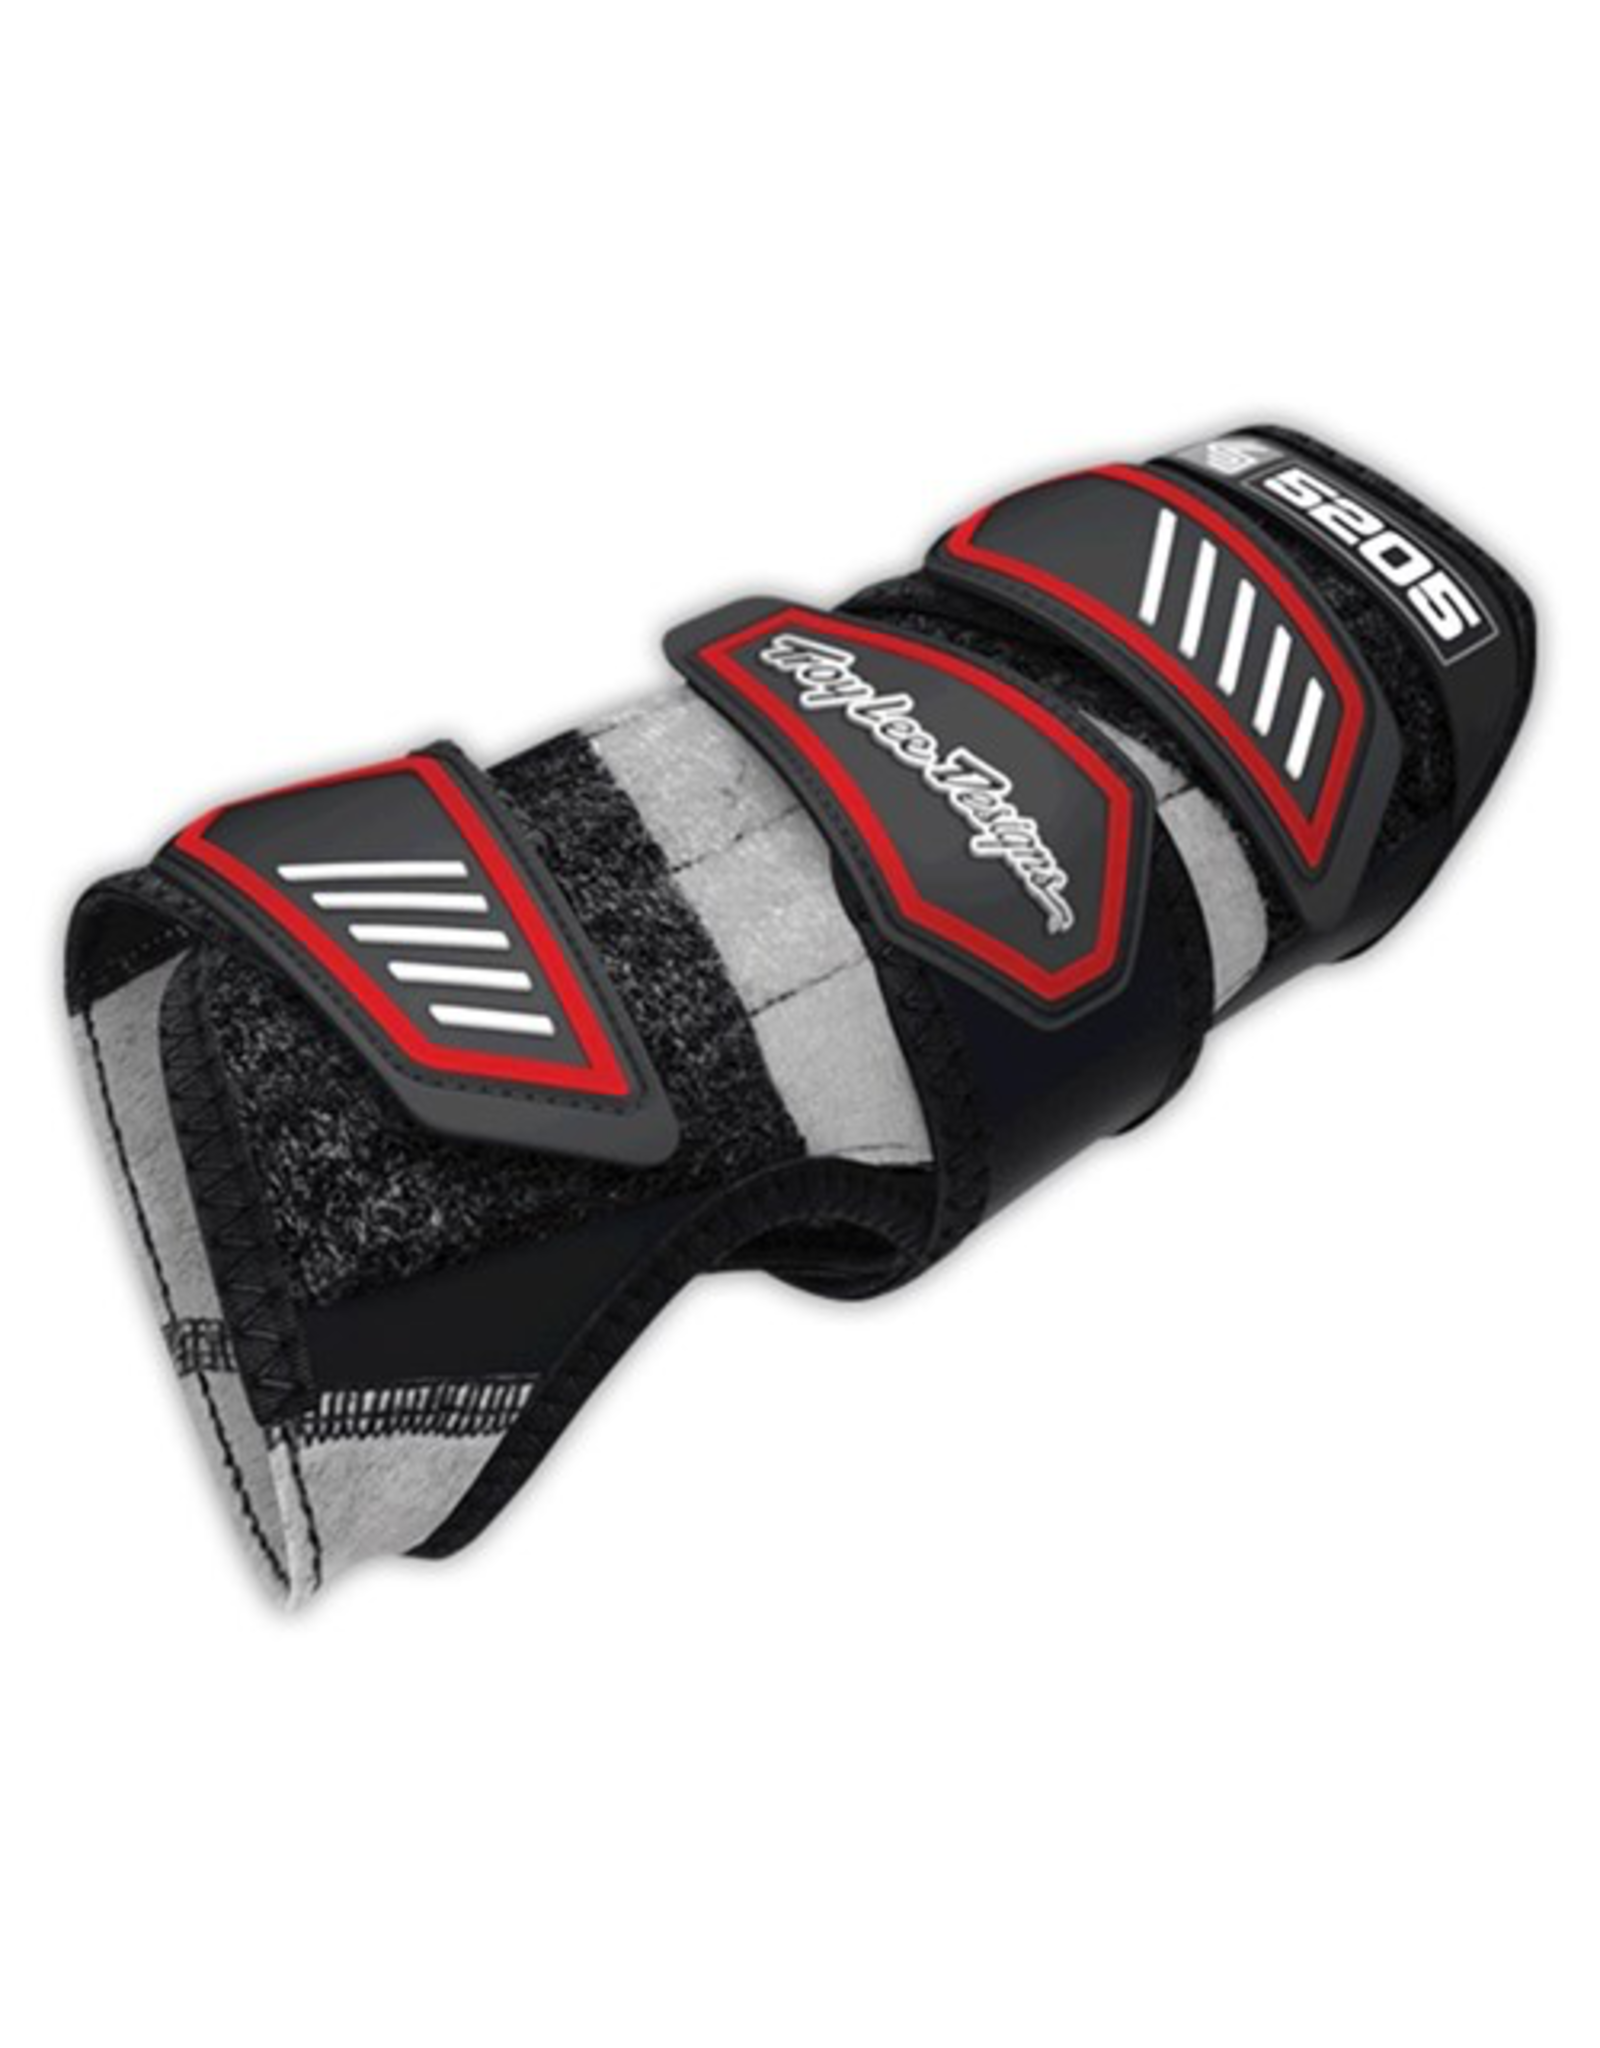 TROY LEE DESIGNS WRIST GUARD TLD WS 5205 RIGHT